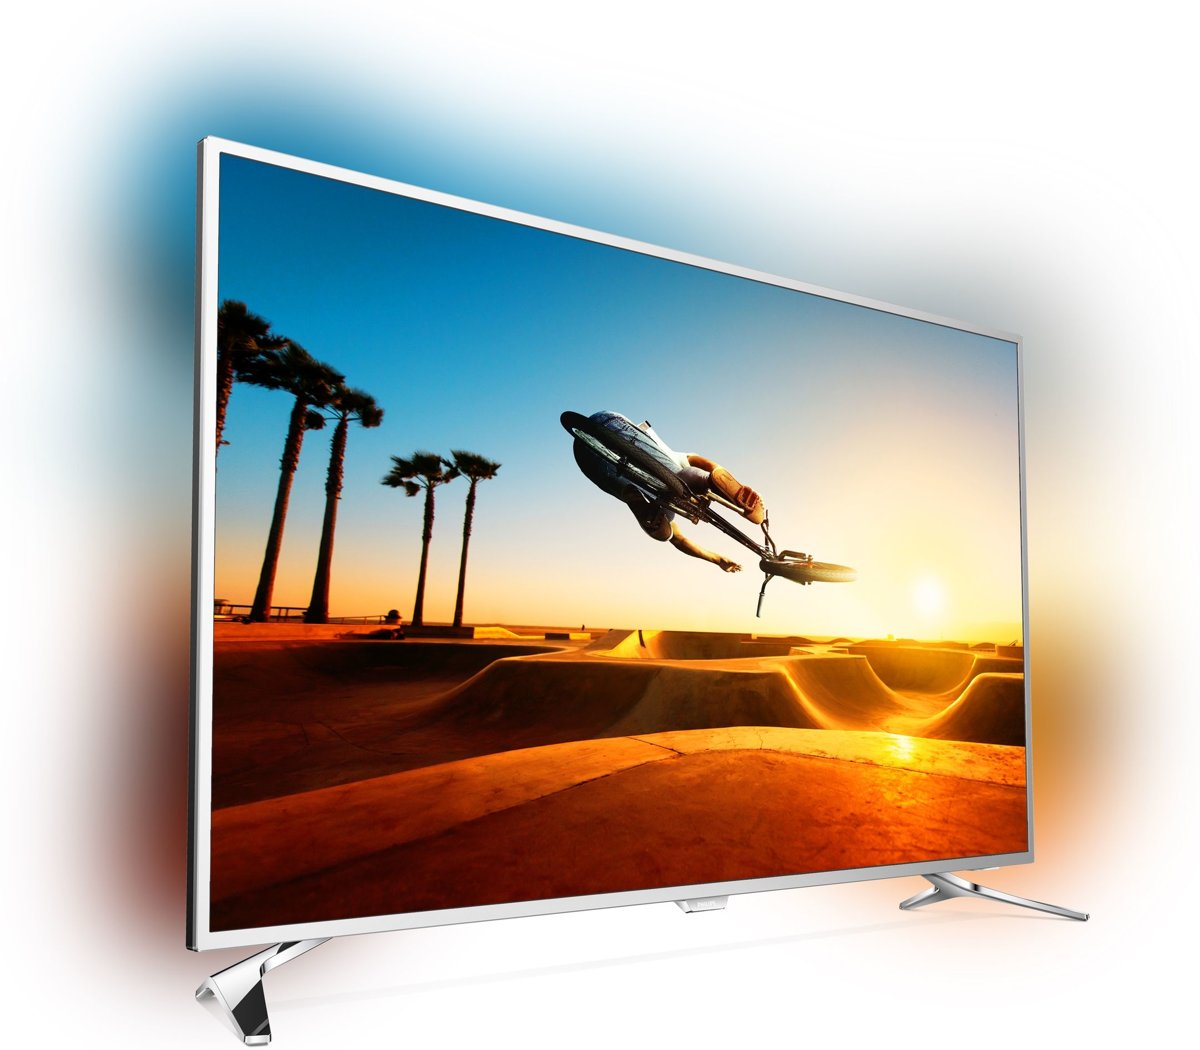 Philips 7000 series Ultraslanke 4K-TV powered by Android TV 49PUS7272/12